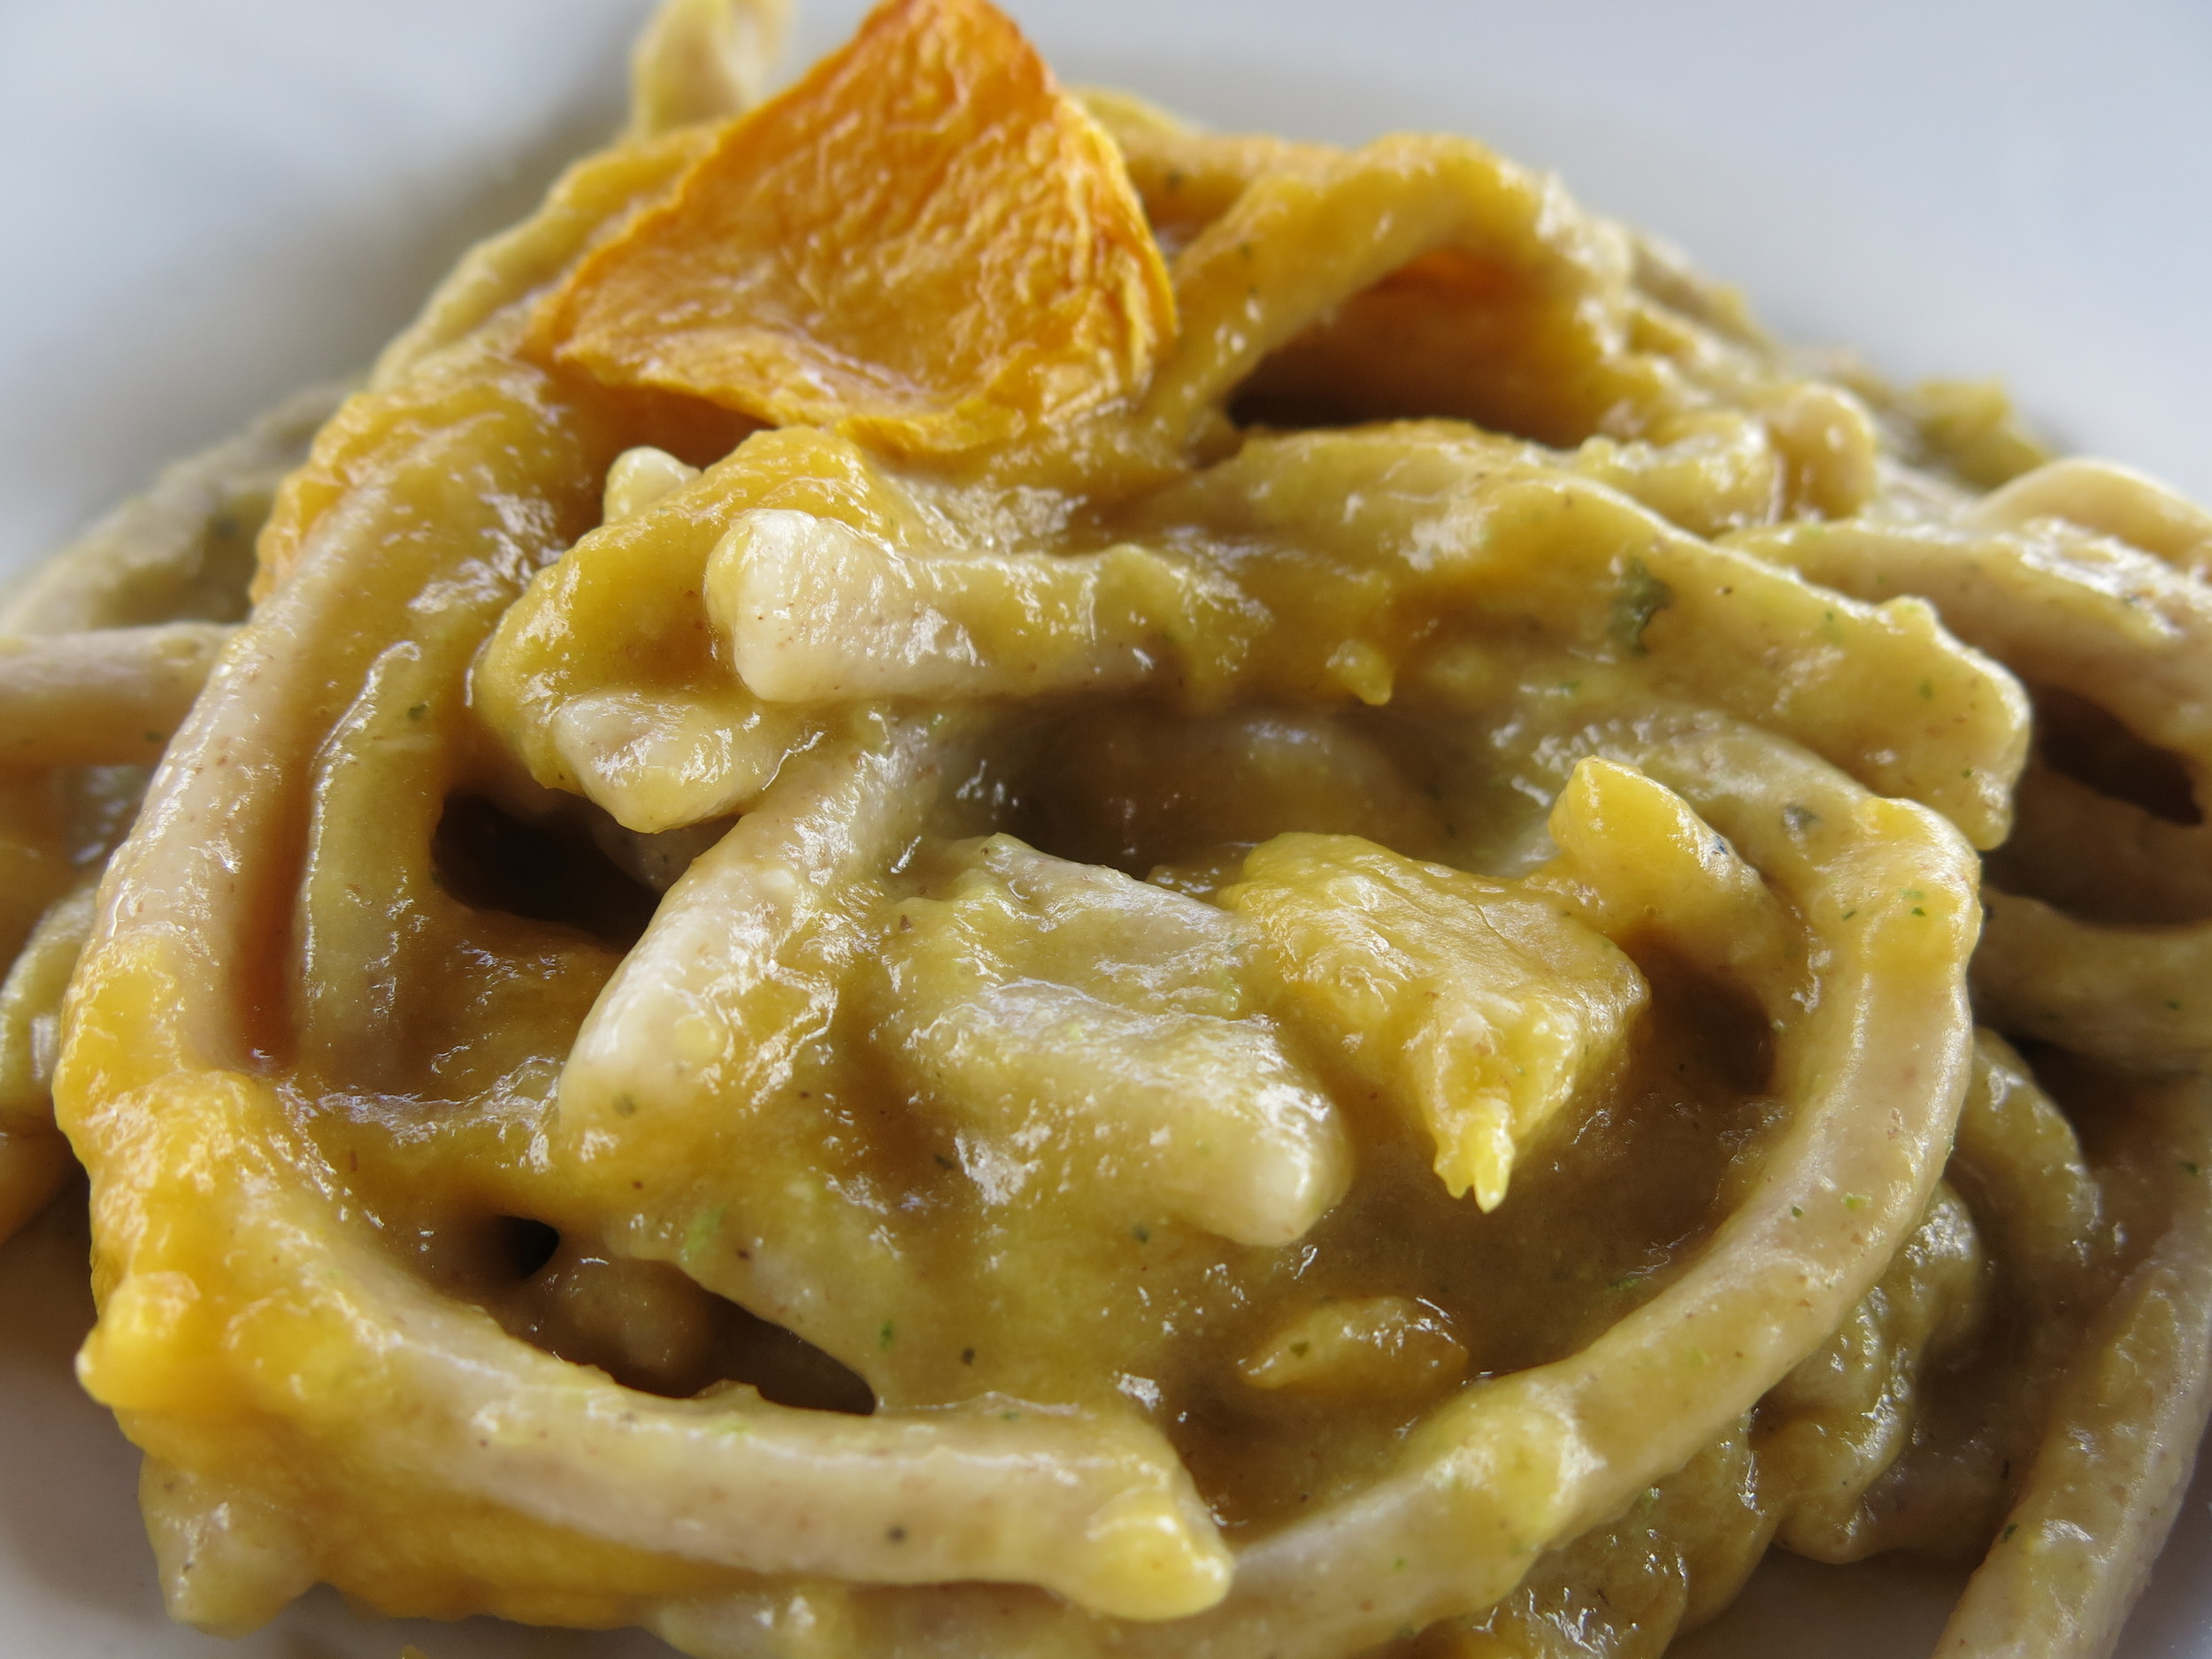 6-fresh-pasta-with-zucca-and-conciato-romano.jpg